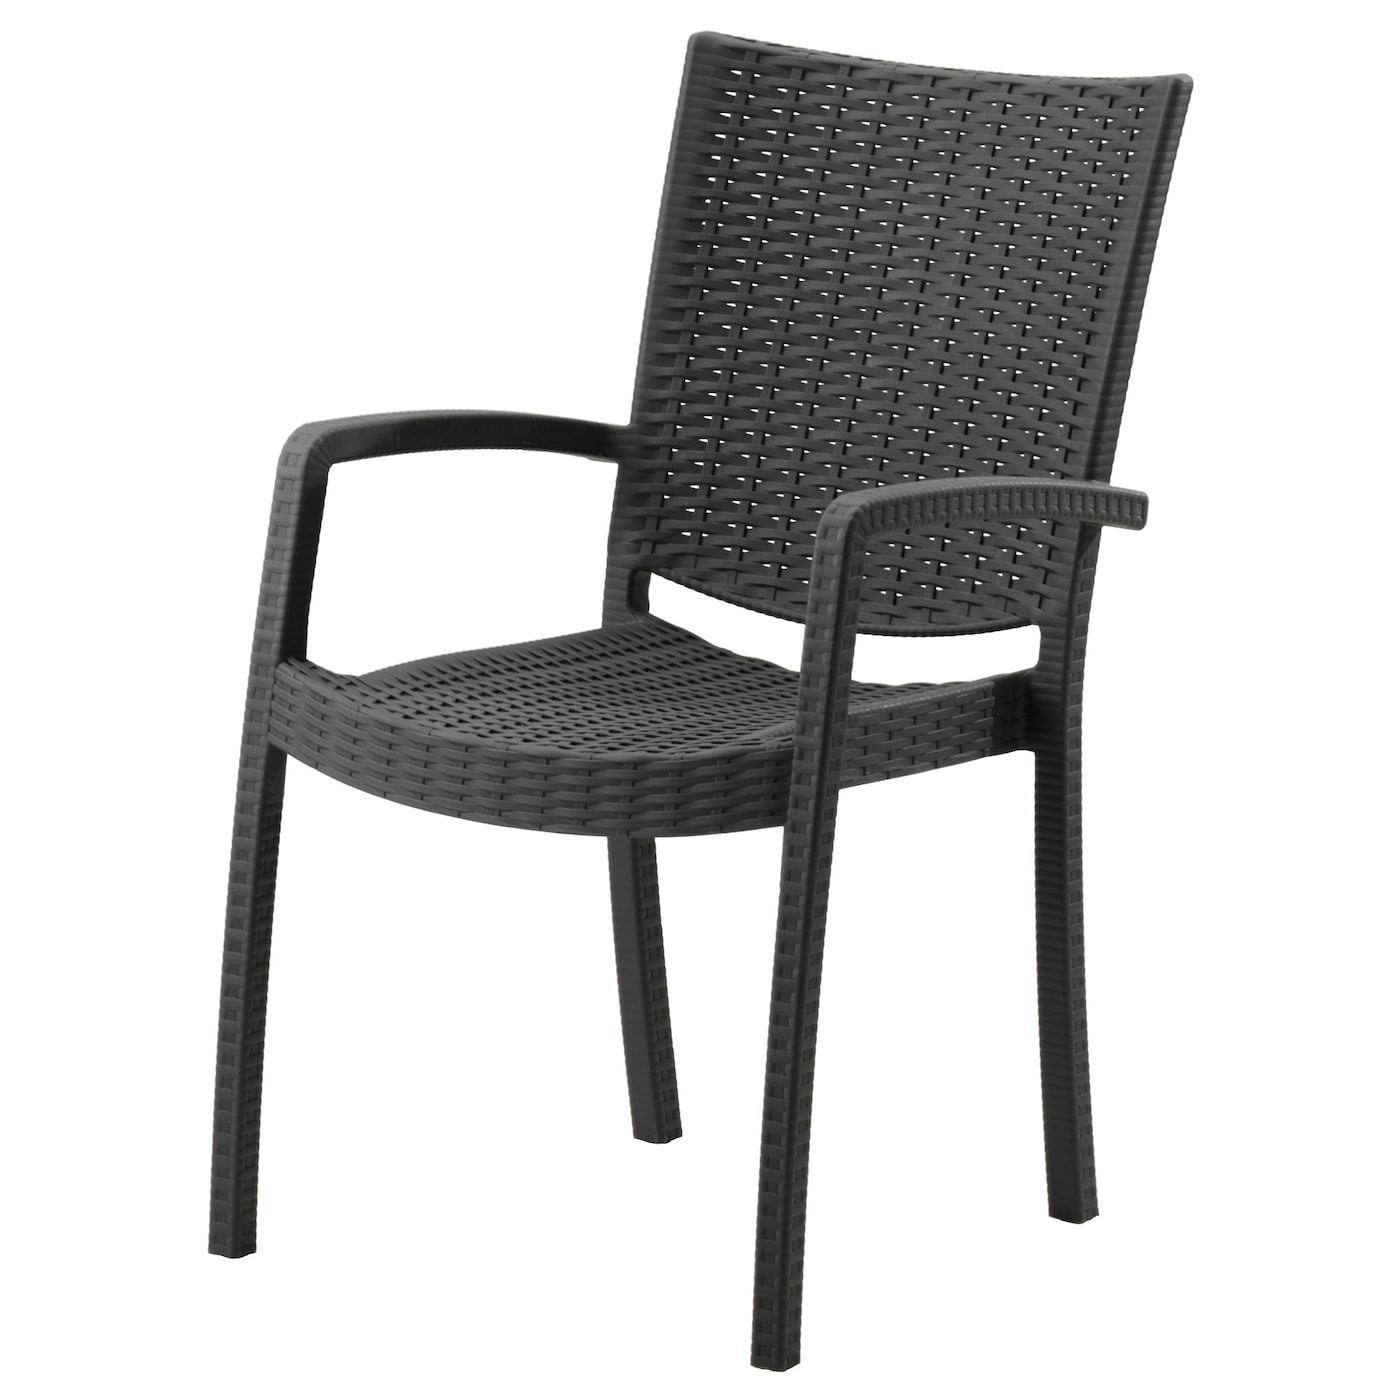 innamo chair with armrests outdoor dark grey ikea. Black Bedroom Furniture Sets. Home Design Ideas